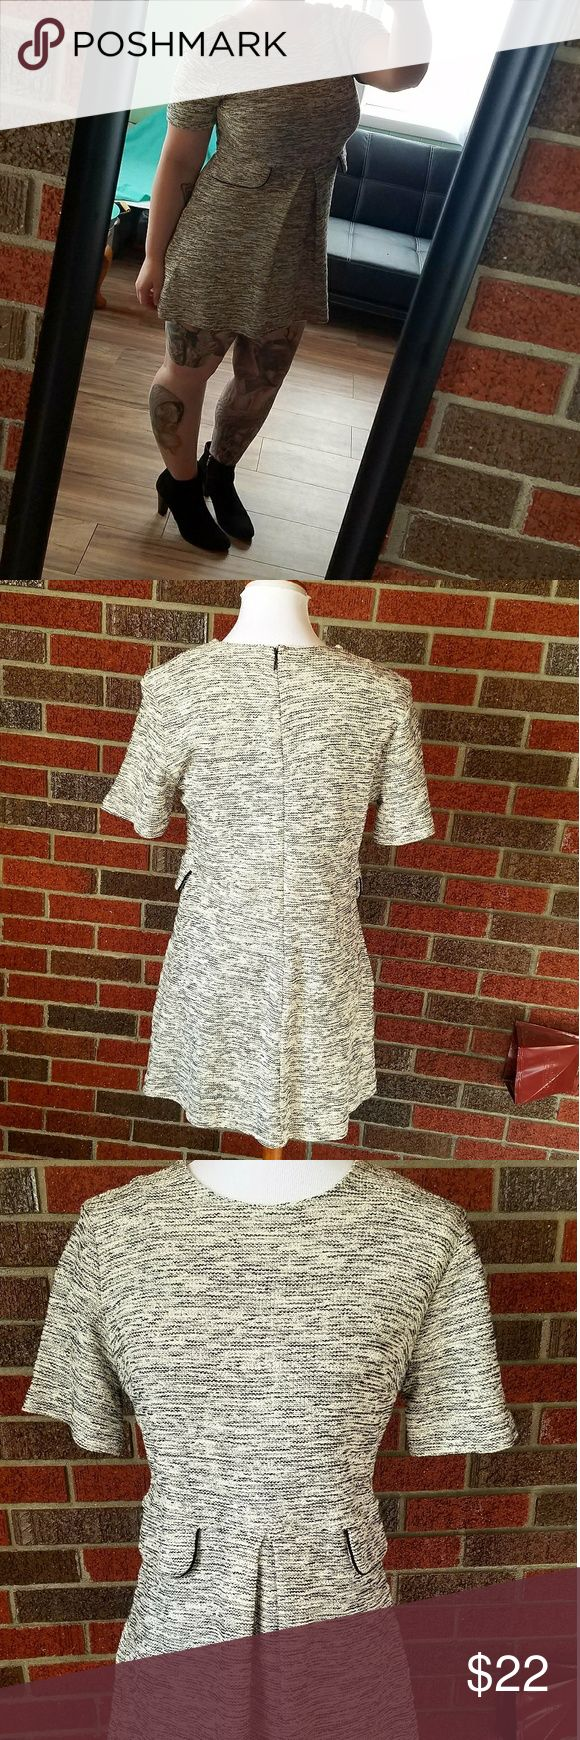 Forever 21 Tweed Short Sleeve Dress Gently worn. Black and white colors running into each other. Tweed look. Has on pleat in the front. A faux pocket on each side. Zipper up back. Short sleeve. Size Large. Forever 21 Dresses